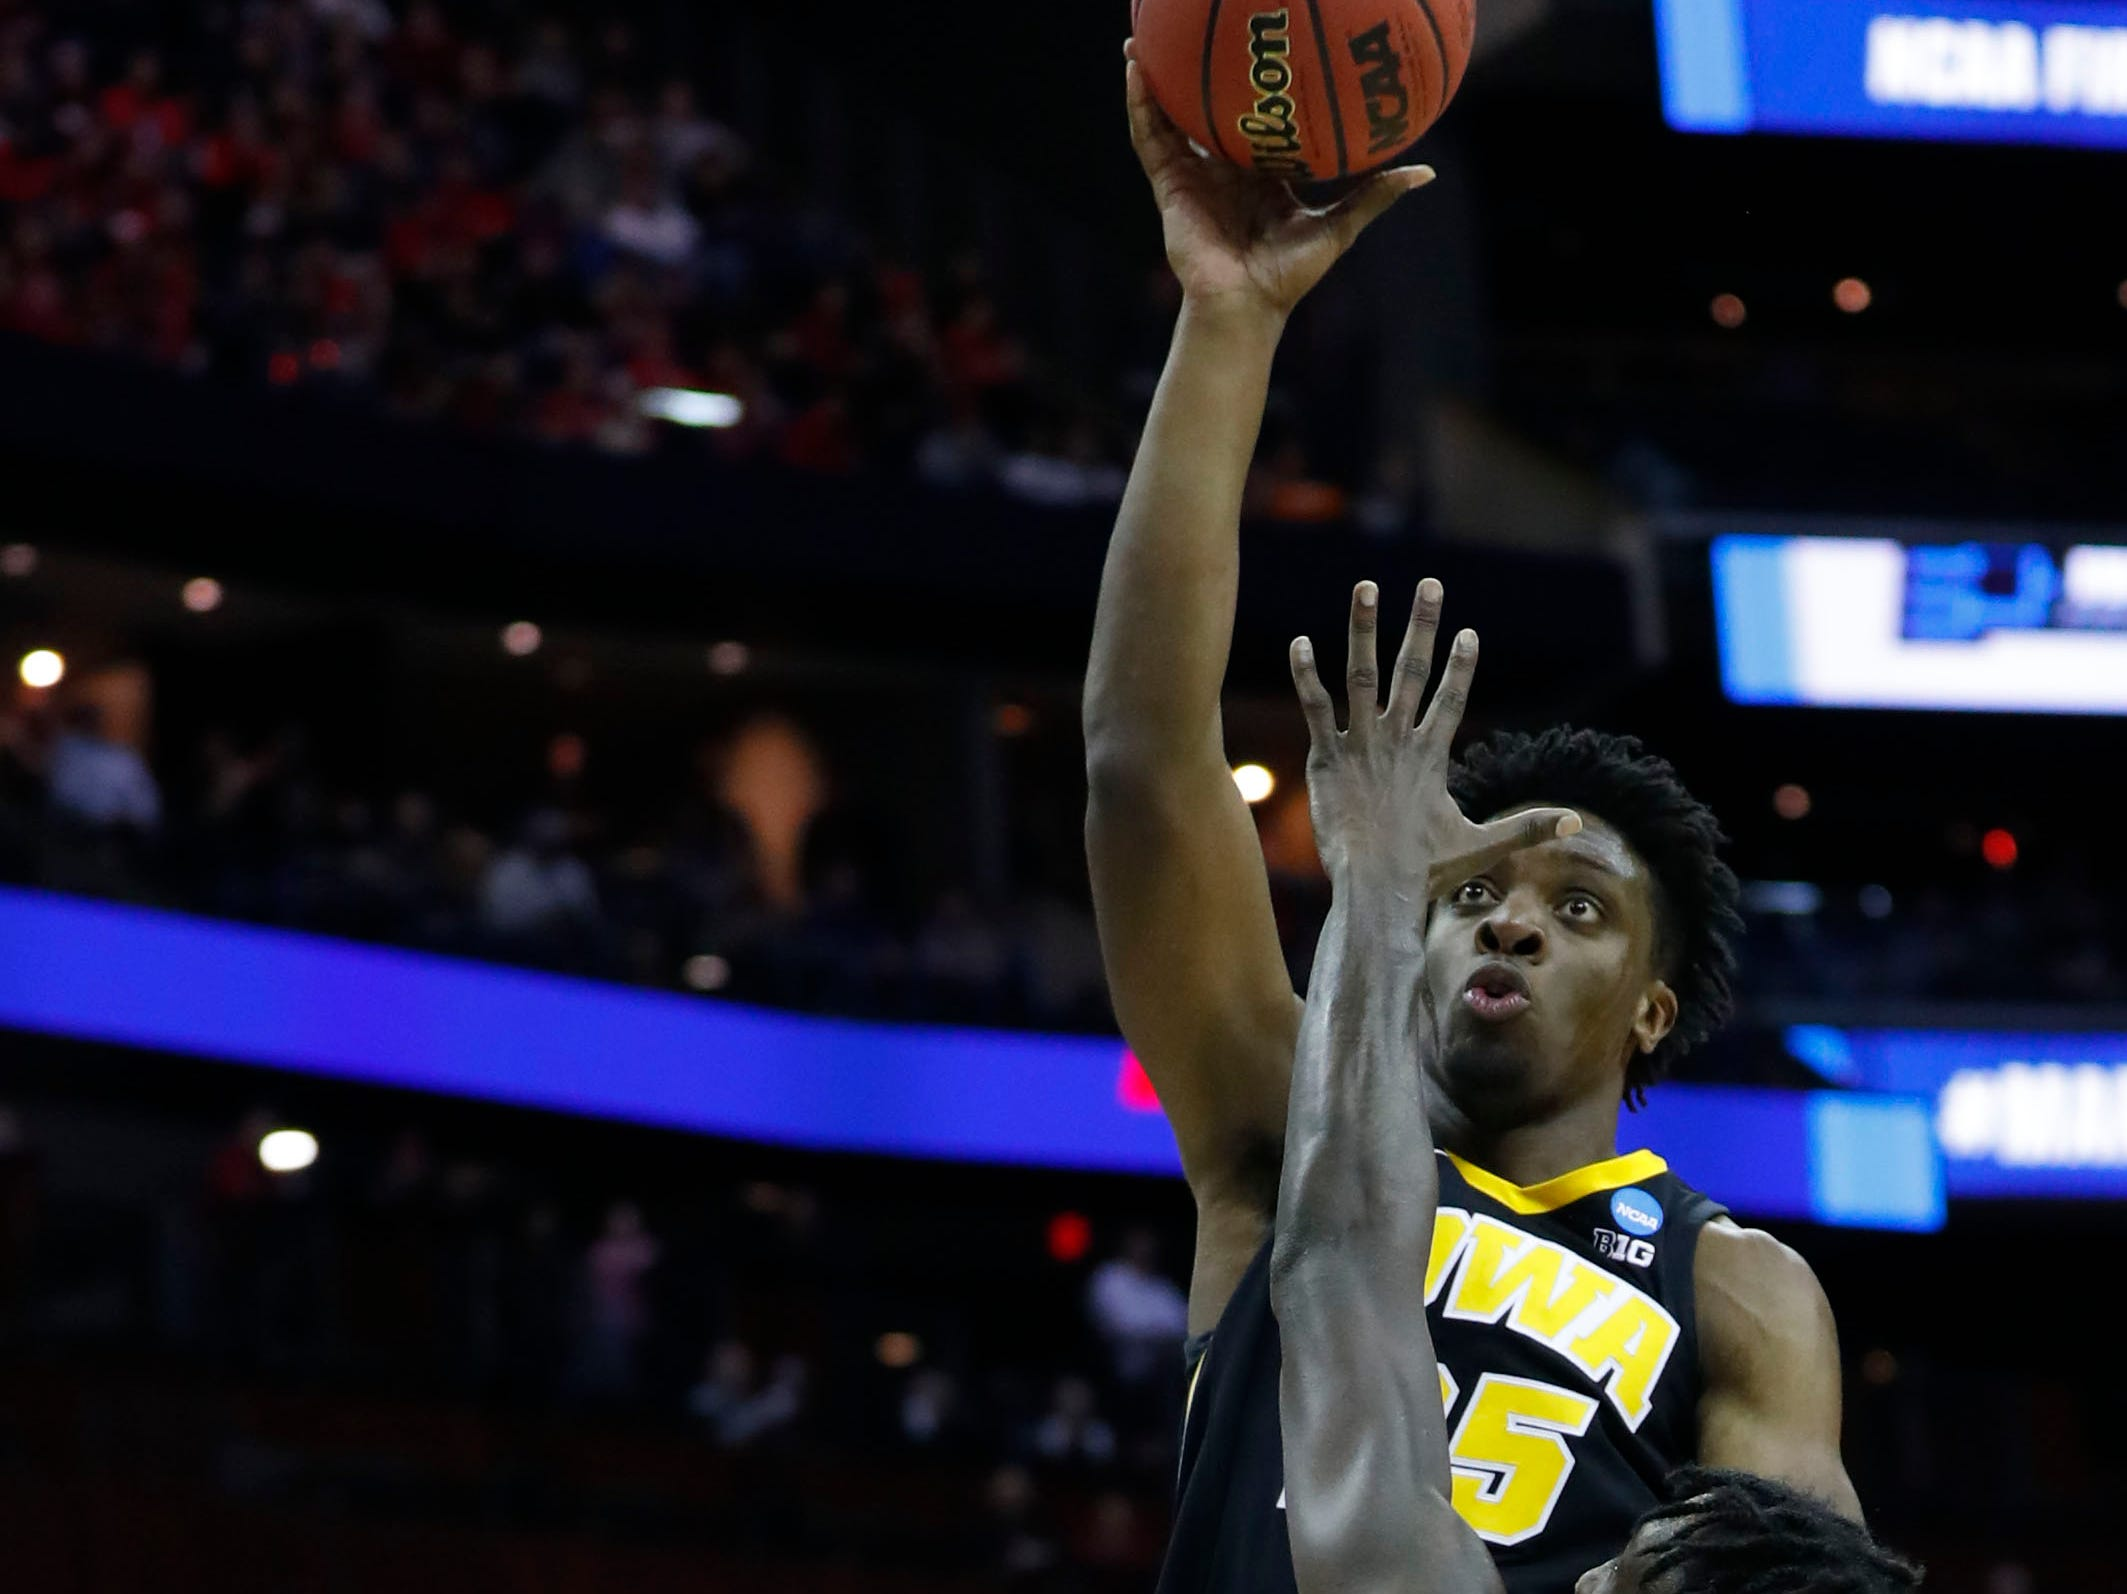 Mar 22, 2019; Columbus, OH, USA; Iowa Hawkeyes forward Tyler Cook (25) shoots the ball defended by Cincinnati Bearcats center Nysier Brooks (33) in the second half in the first round of the 2019 NCAA Tournament at Nationwide Arena. Mandatory Credit: Rick Osentoski-USA TODAY Sports